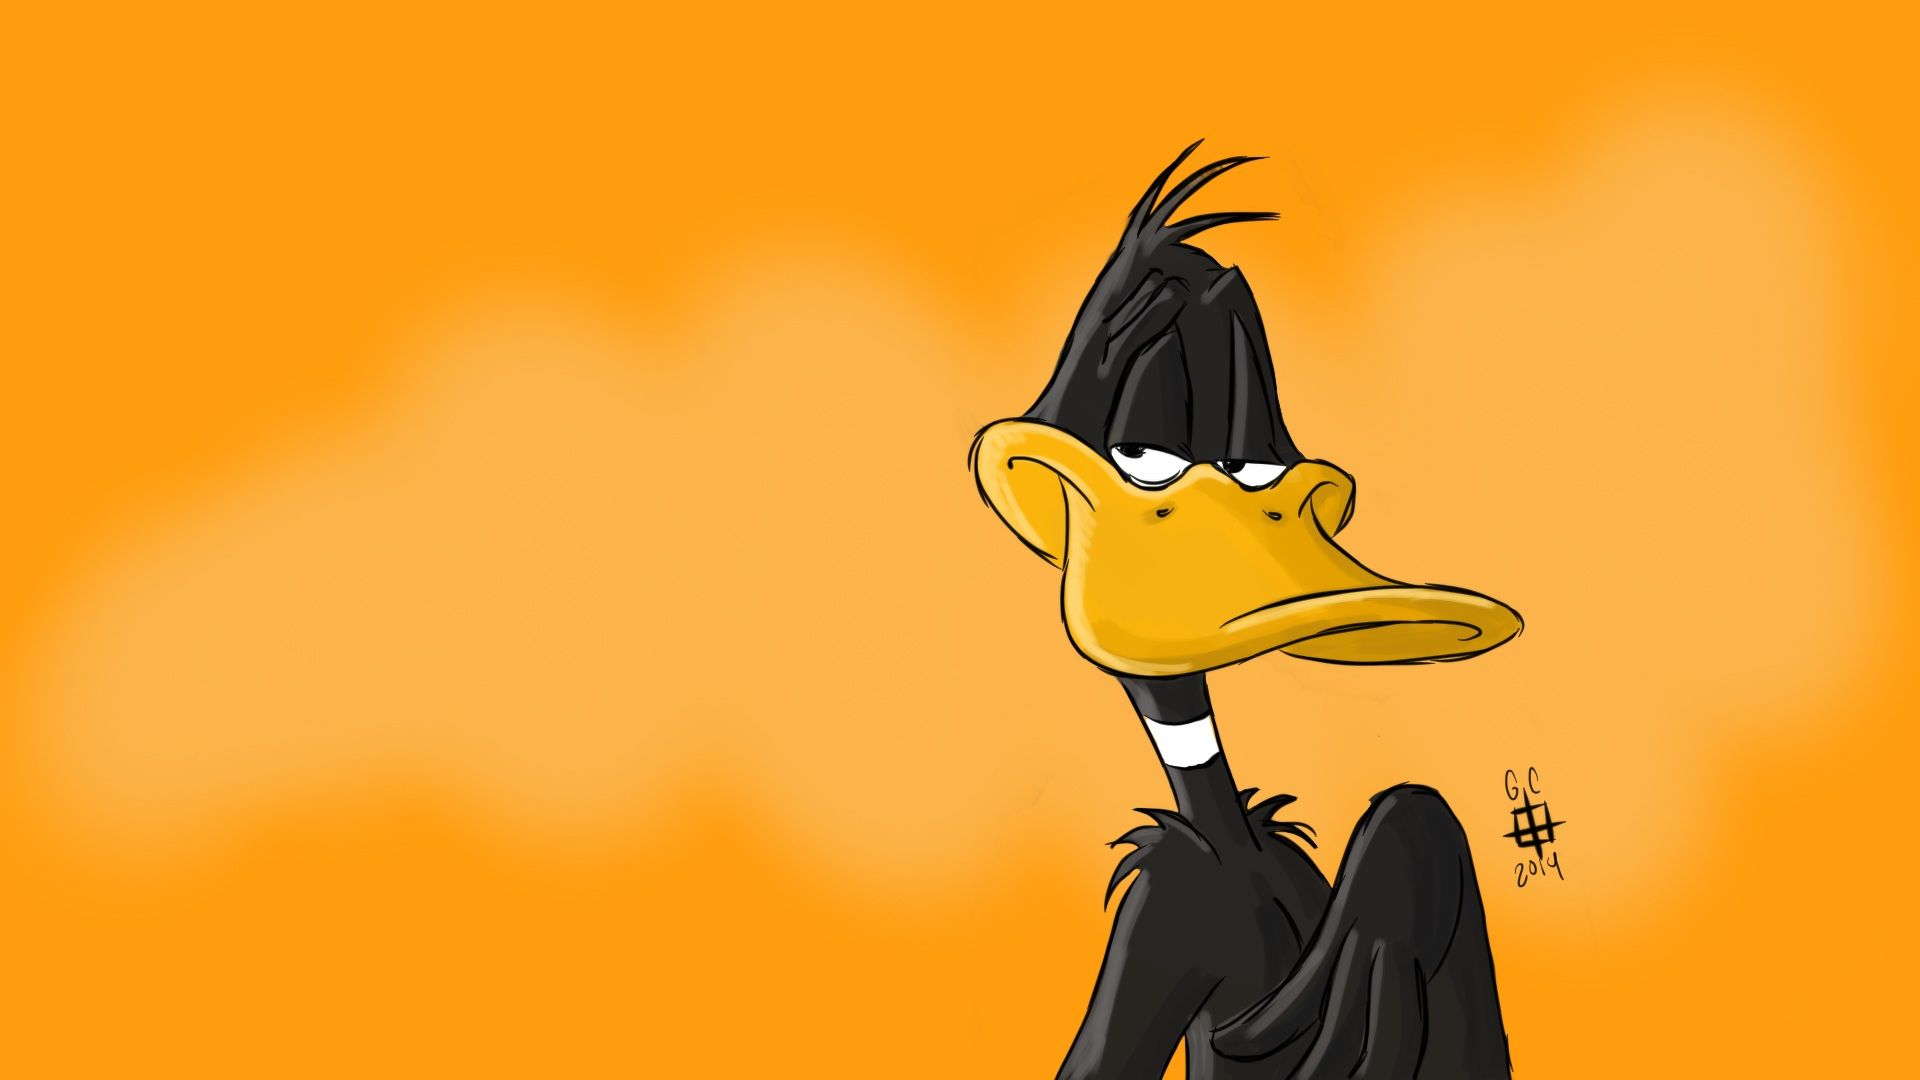 Full Hd Cars Wallpapers For Android Daffy Duck Hd Wallpapers